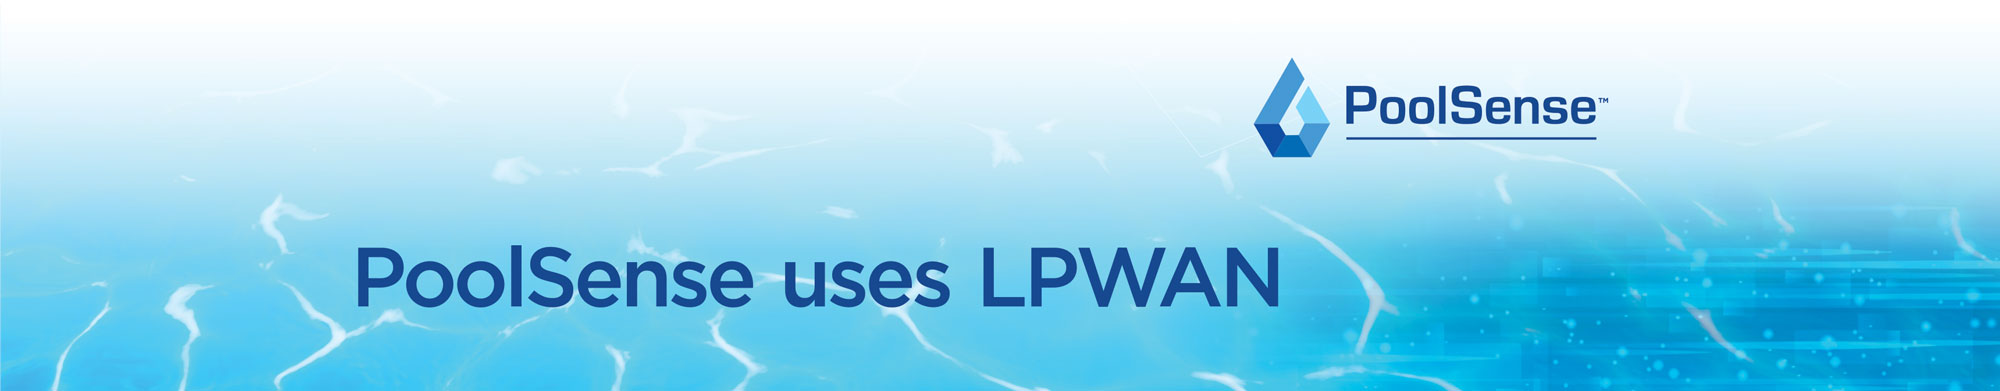 poolsense-uses-lpwan